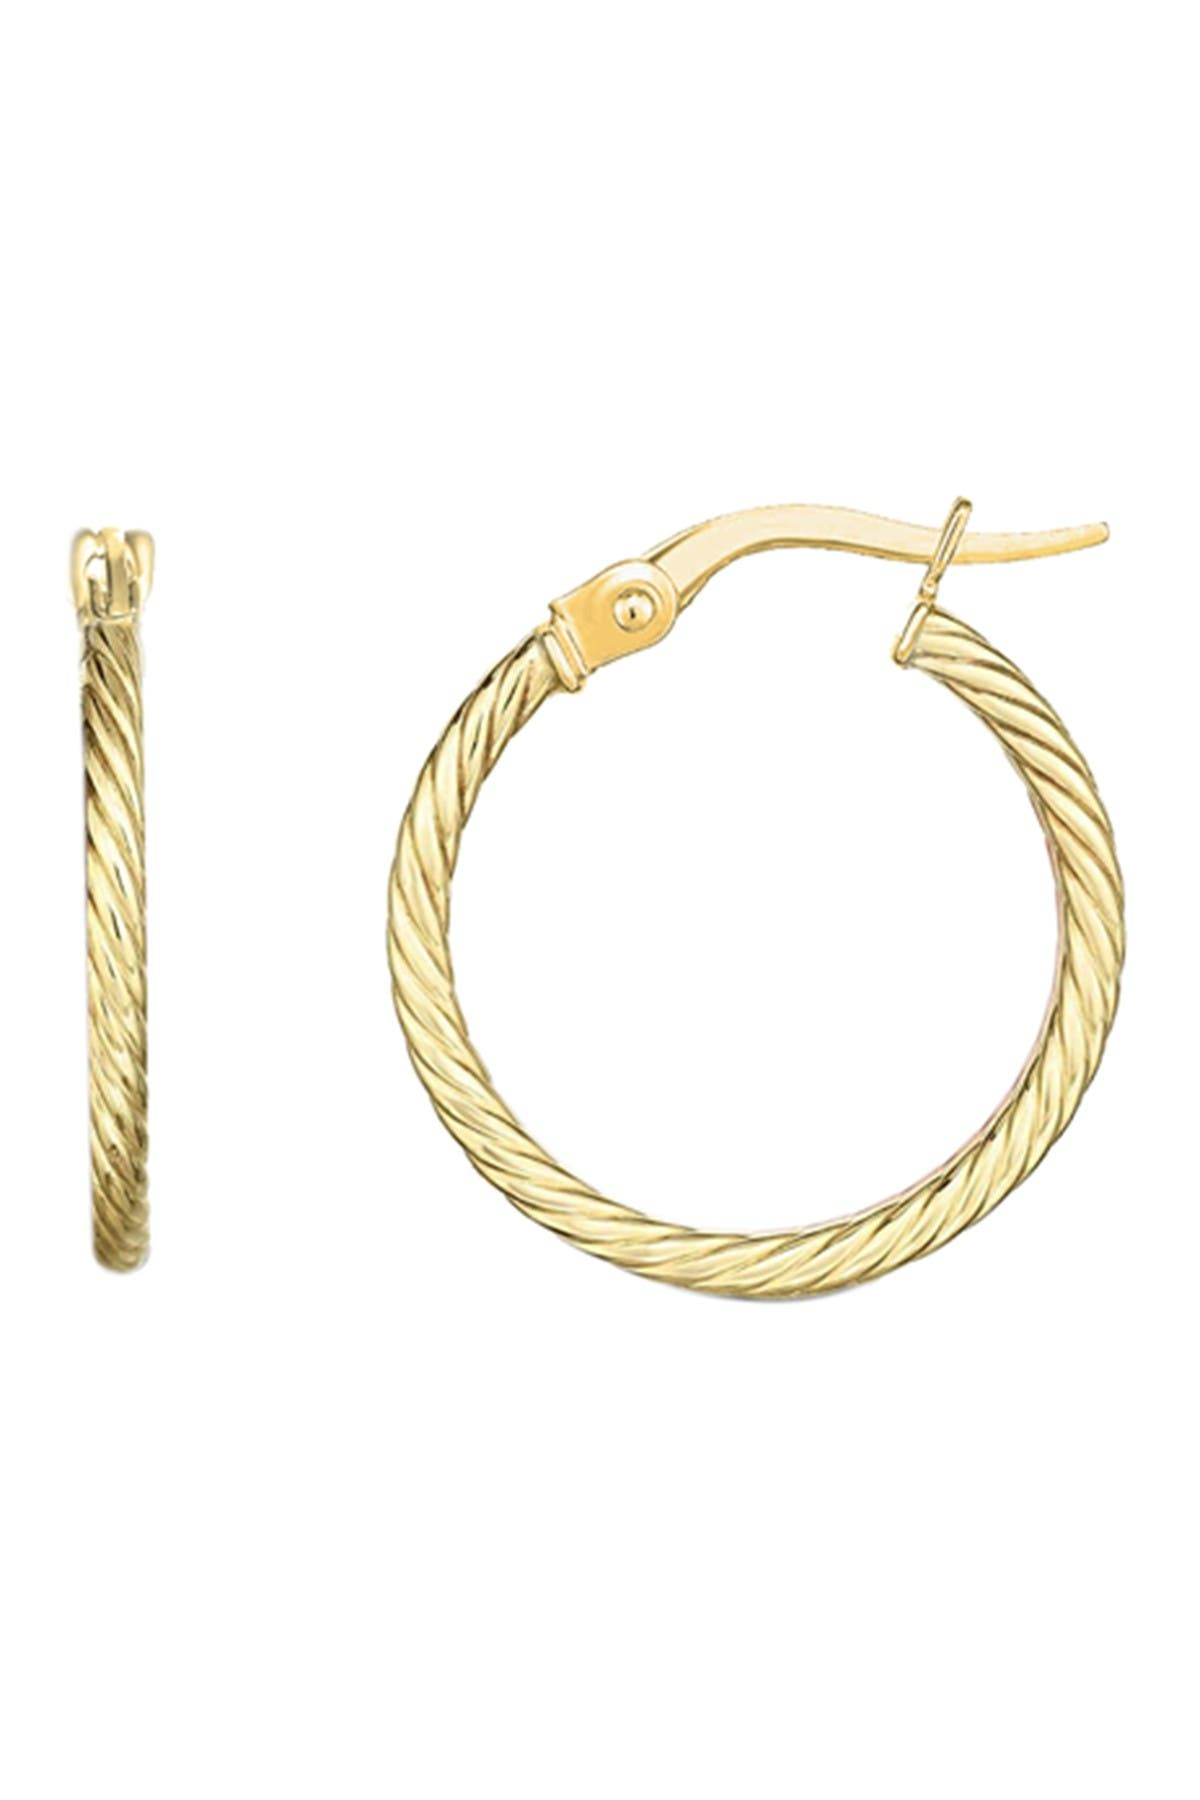 Image of Savvy Cie 18K Yellow Gold Vermeil 20mm Fluted Hoop Earrings